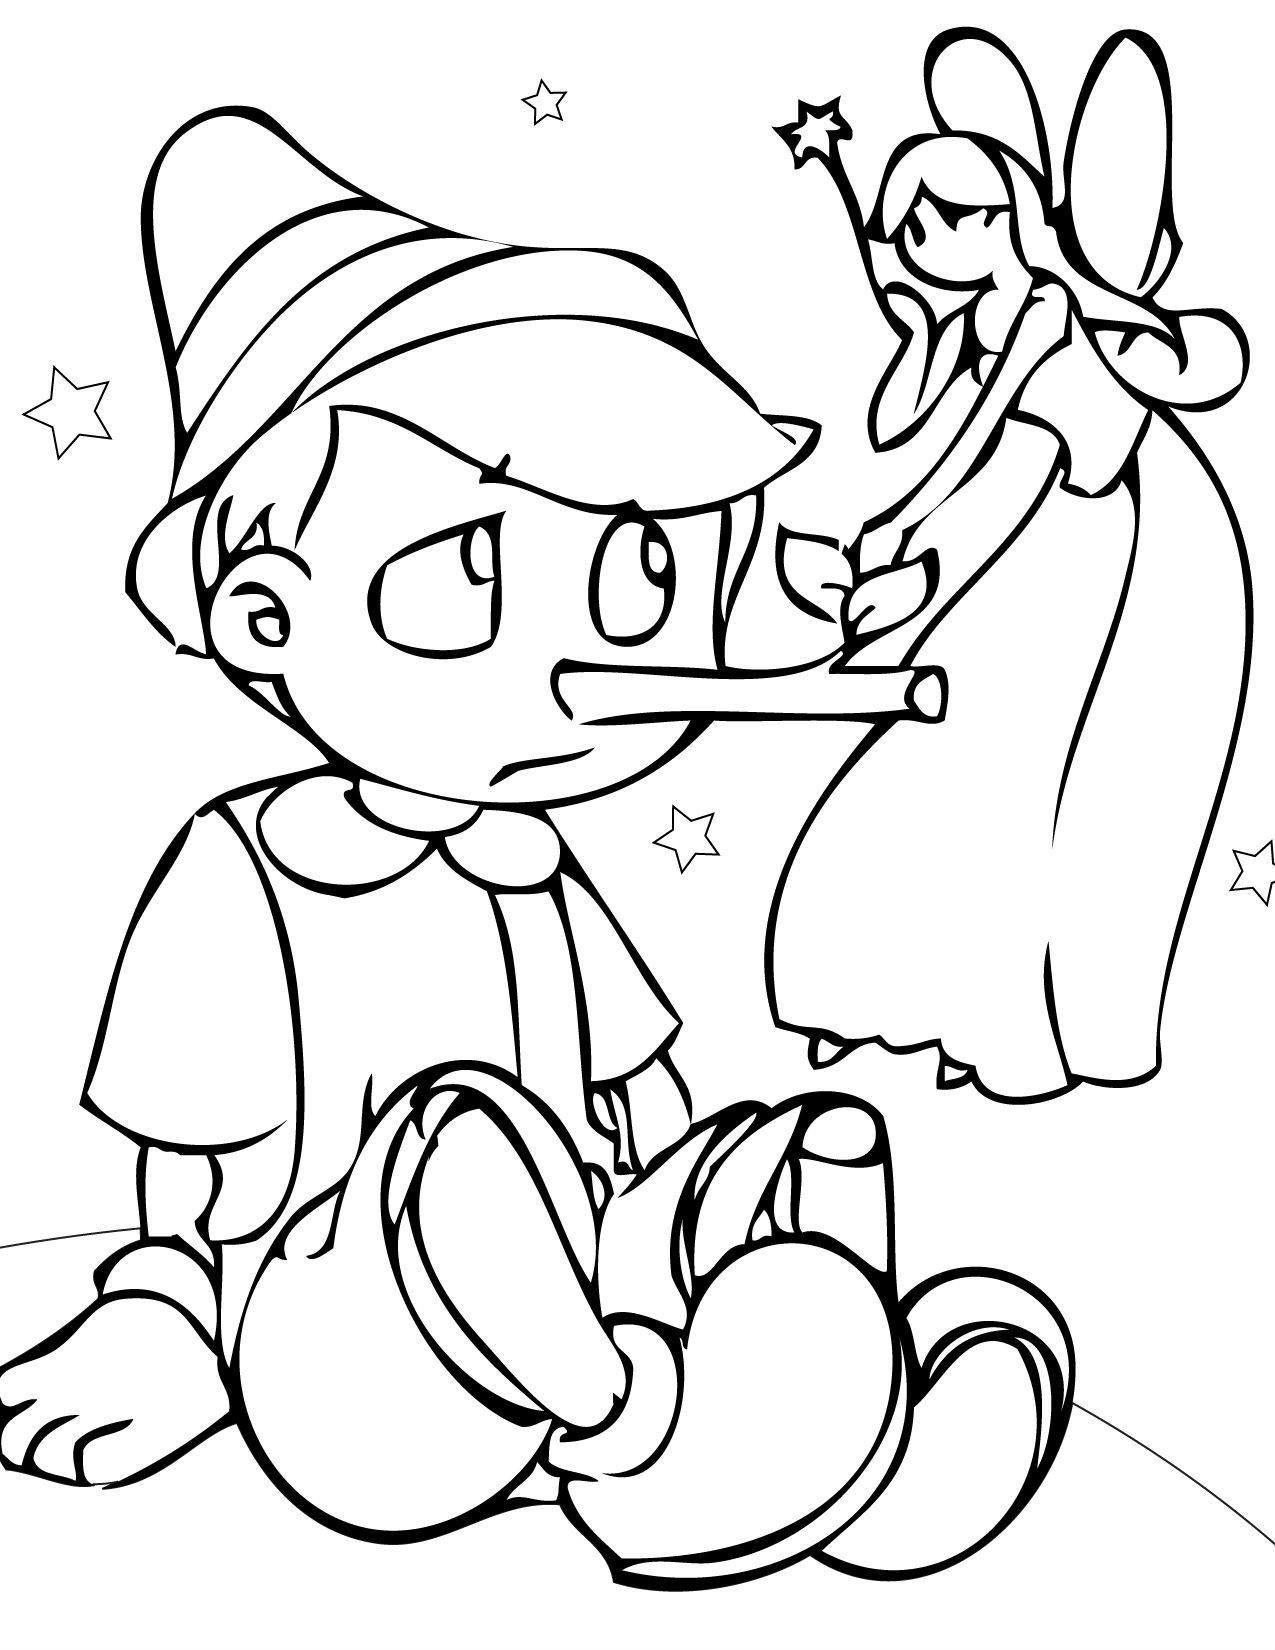 Fairy Tales Pinocchio Coloring Pages For Kids C4g Printable Fairy Tales Coloring Pages For Kids Disney Coloring Pages Fairy Coloring Pages Coloring Pages